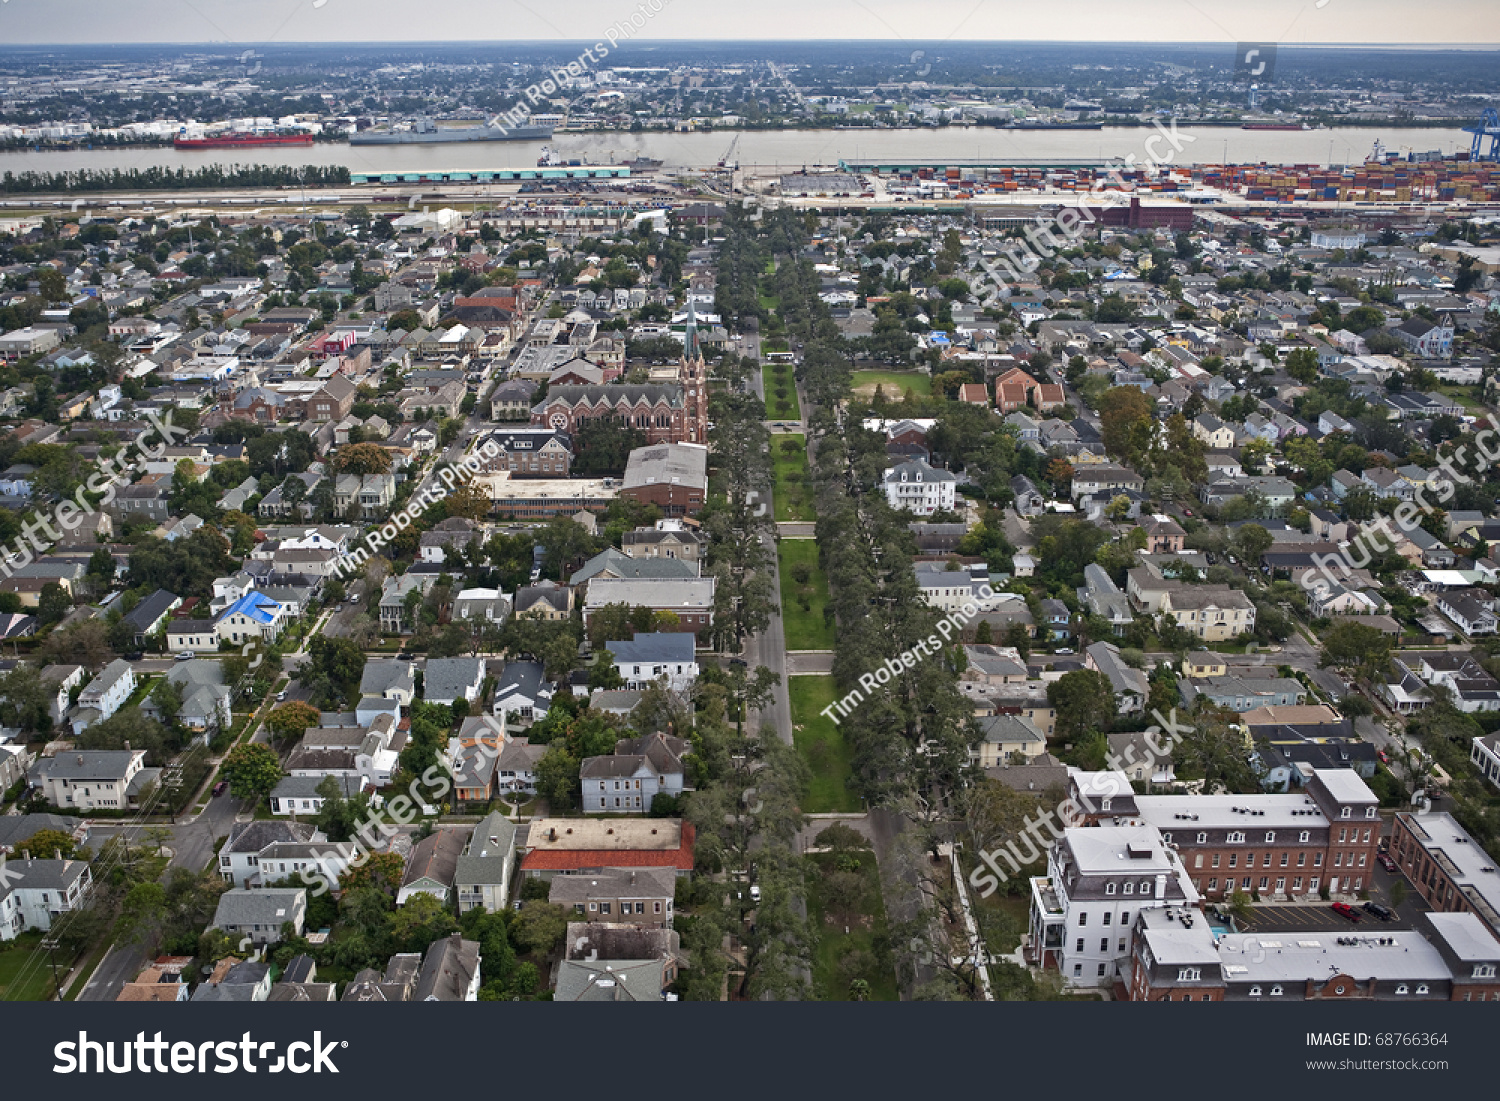 New Orleans, Louisiana About One Year After Hurricane Katrina Stock ...